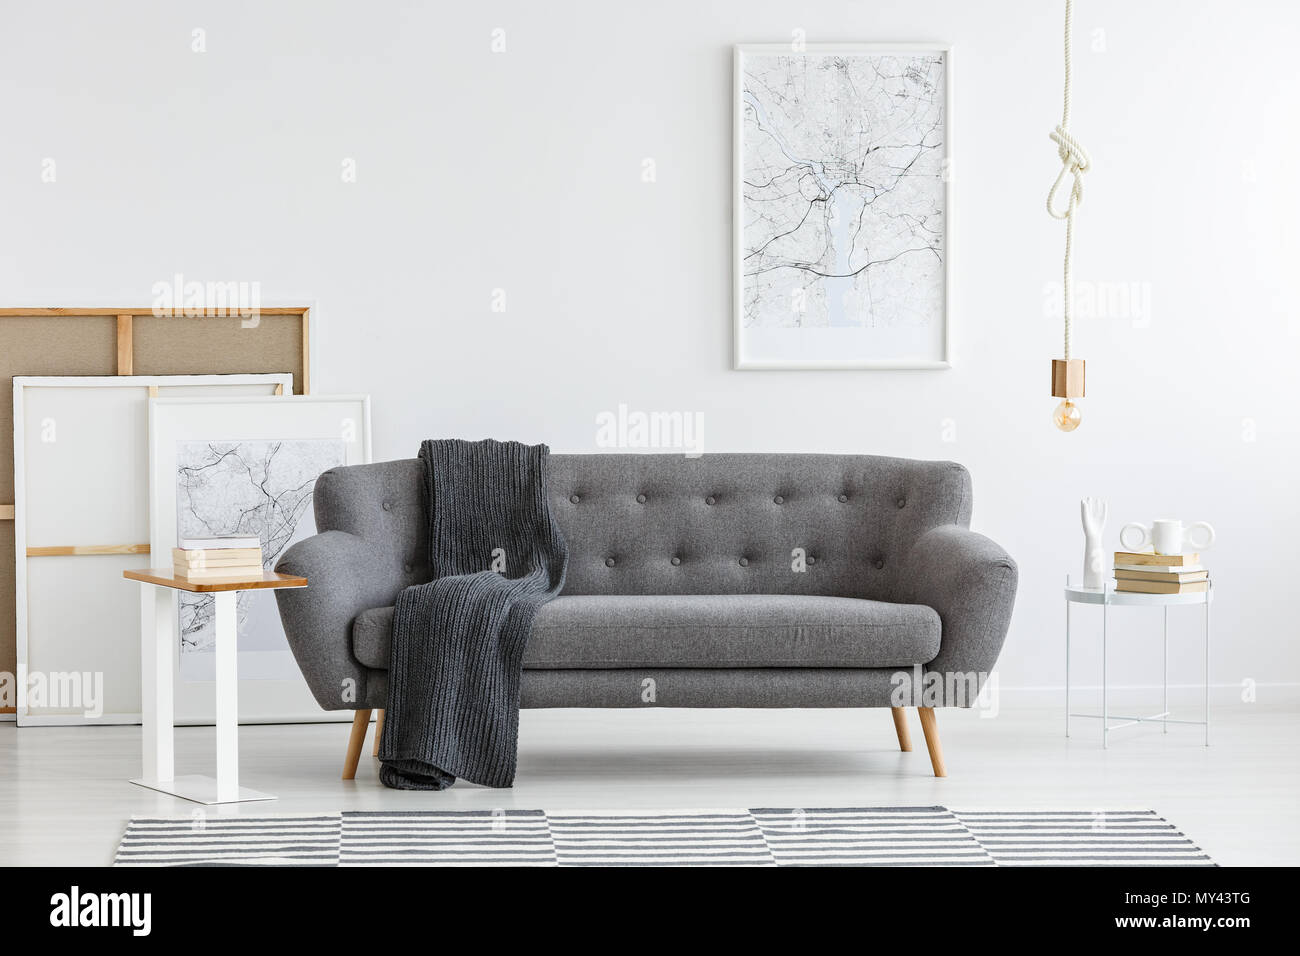 Prime Scandi Living Room Interior With Grey Big Sofa In The Machost Co Dining Chair Design Ideas Machostcouk